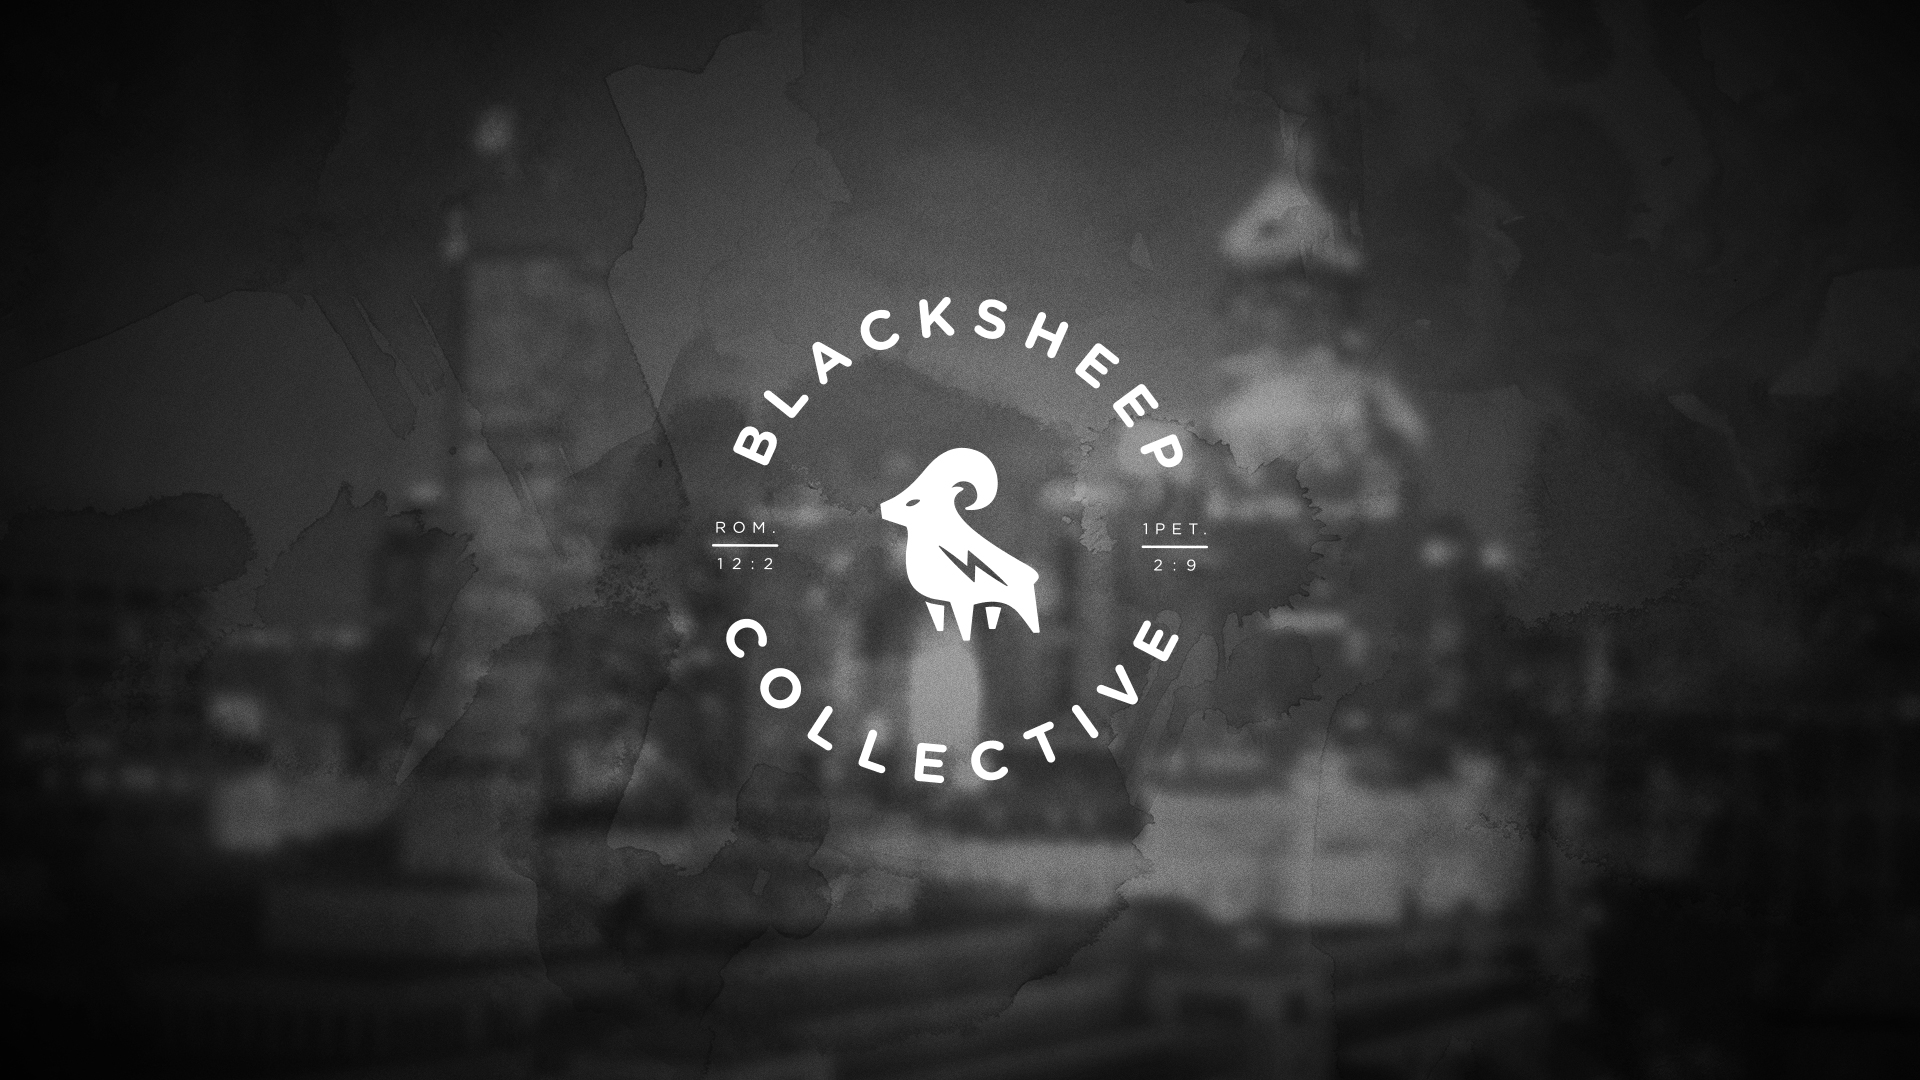 Desktop Wallpaper Blacksheep Collective